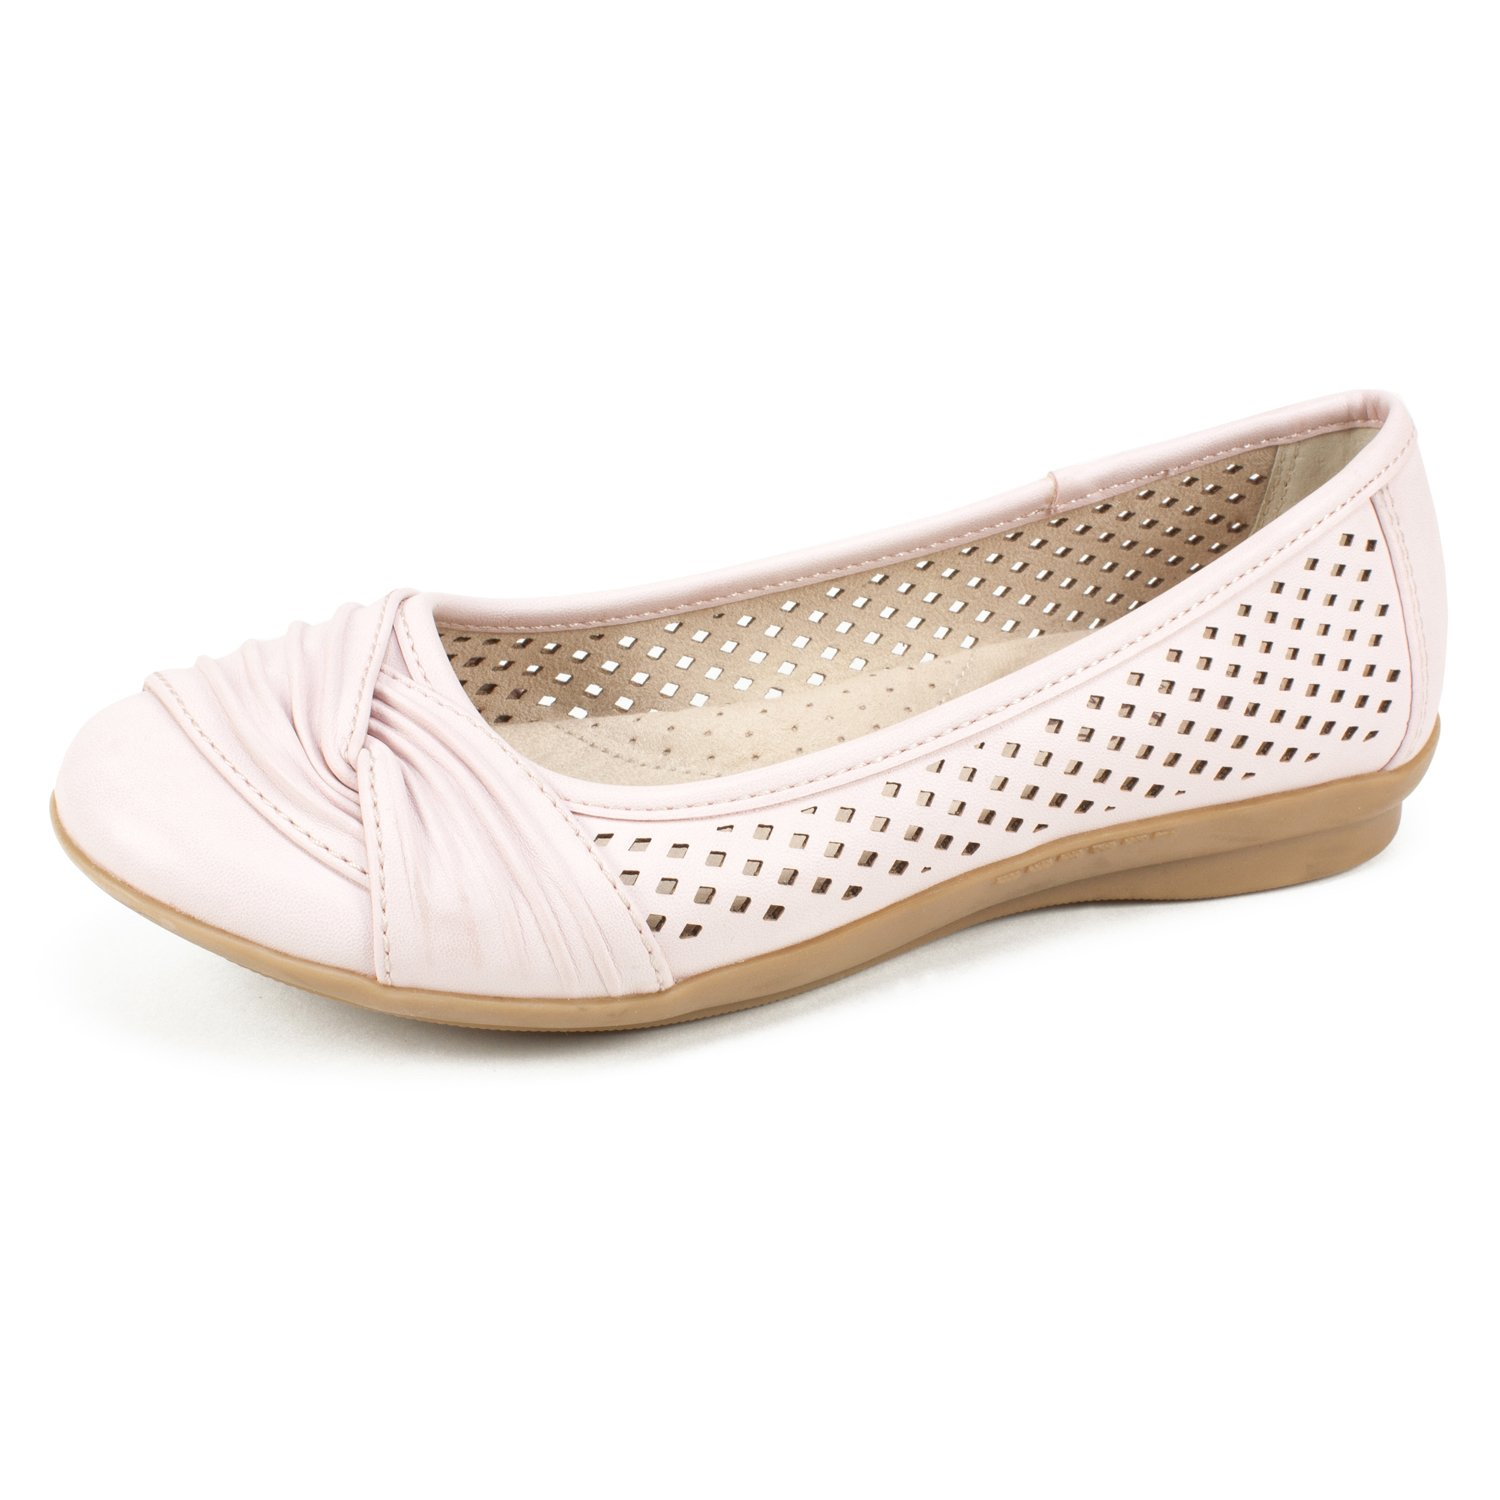 CLIFFS BY WHITE MOUNTAIN Shoes Harlyn Women's Flat, Pale Pink/Burnished/Smooth, 8 M B0797Q79DG Parent